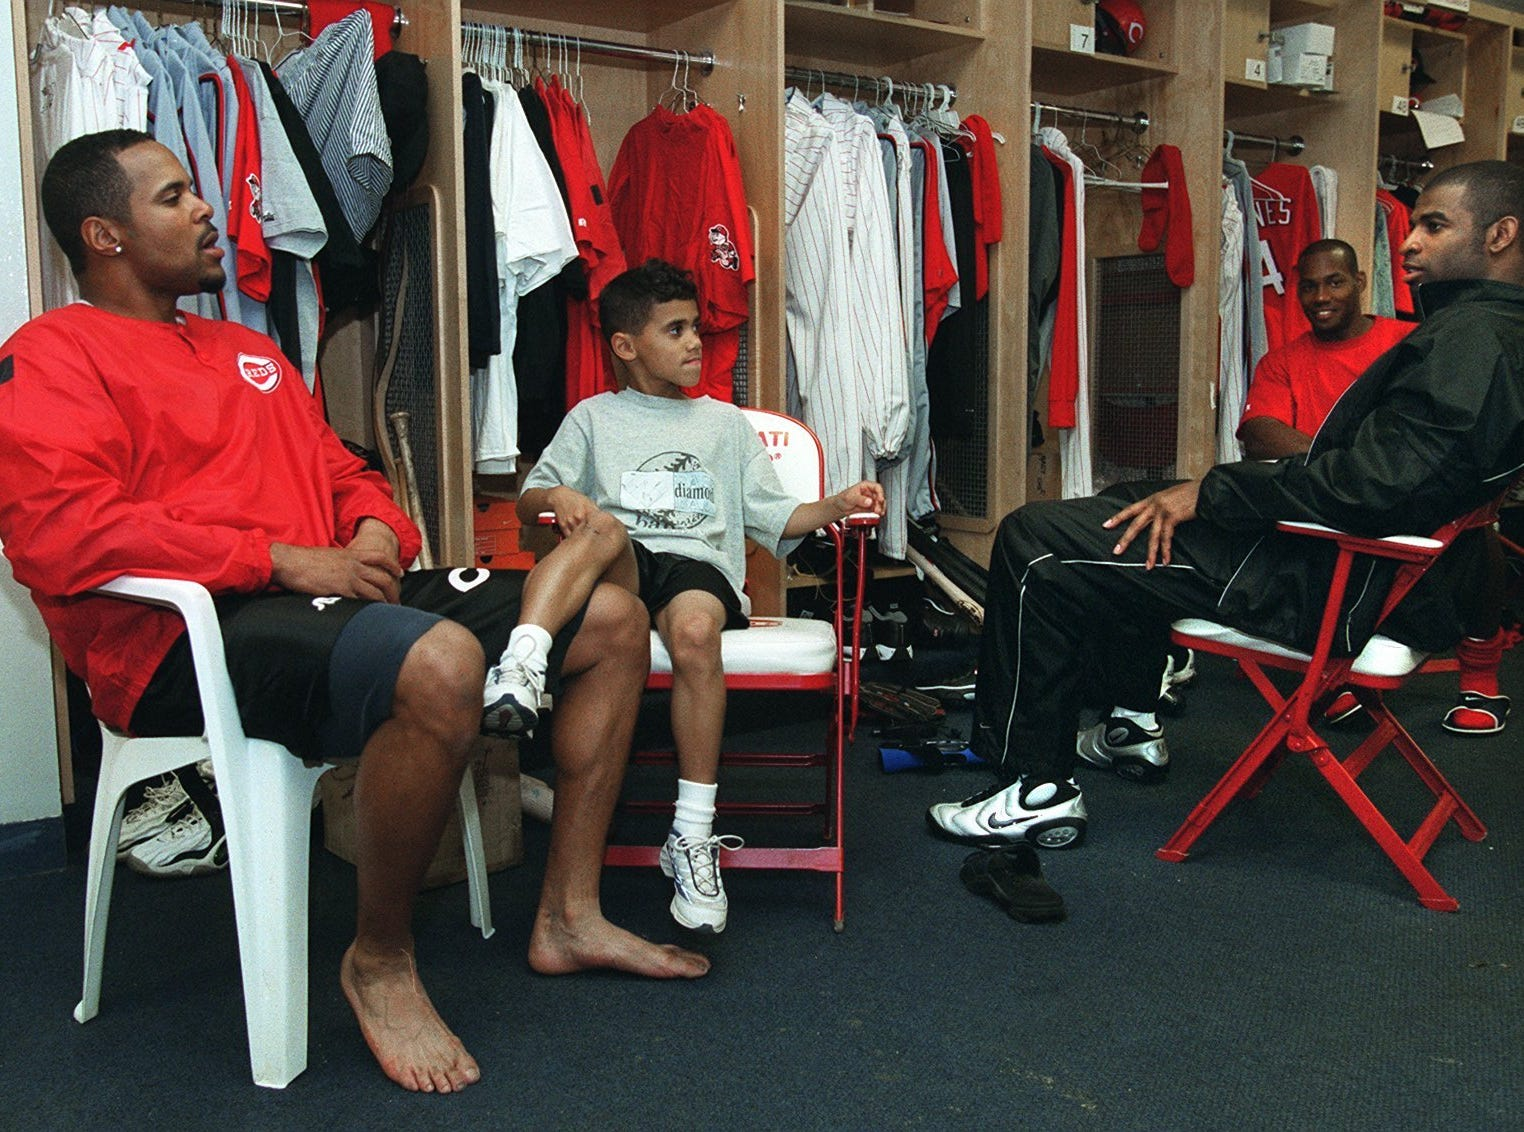 Text: 2000.0328.06.01 Reds capt. Barry Larkin, with son Shane -7- at his side, sits in conversation with Deion Sanders and Alex Ochoa in the reds Sarasota clubhouse. For use with story about Larkin and his senior status. Cincinnati Enquirer/Michael E. Keating mek